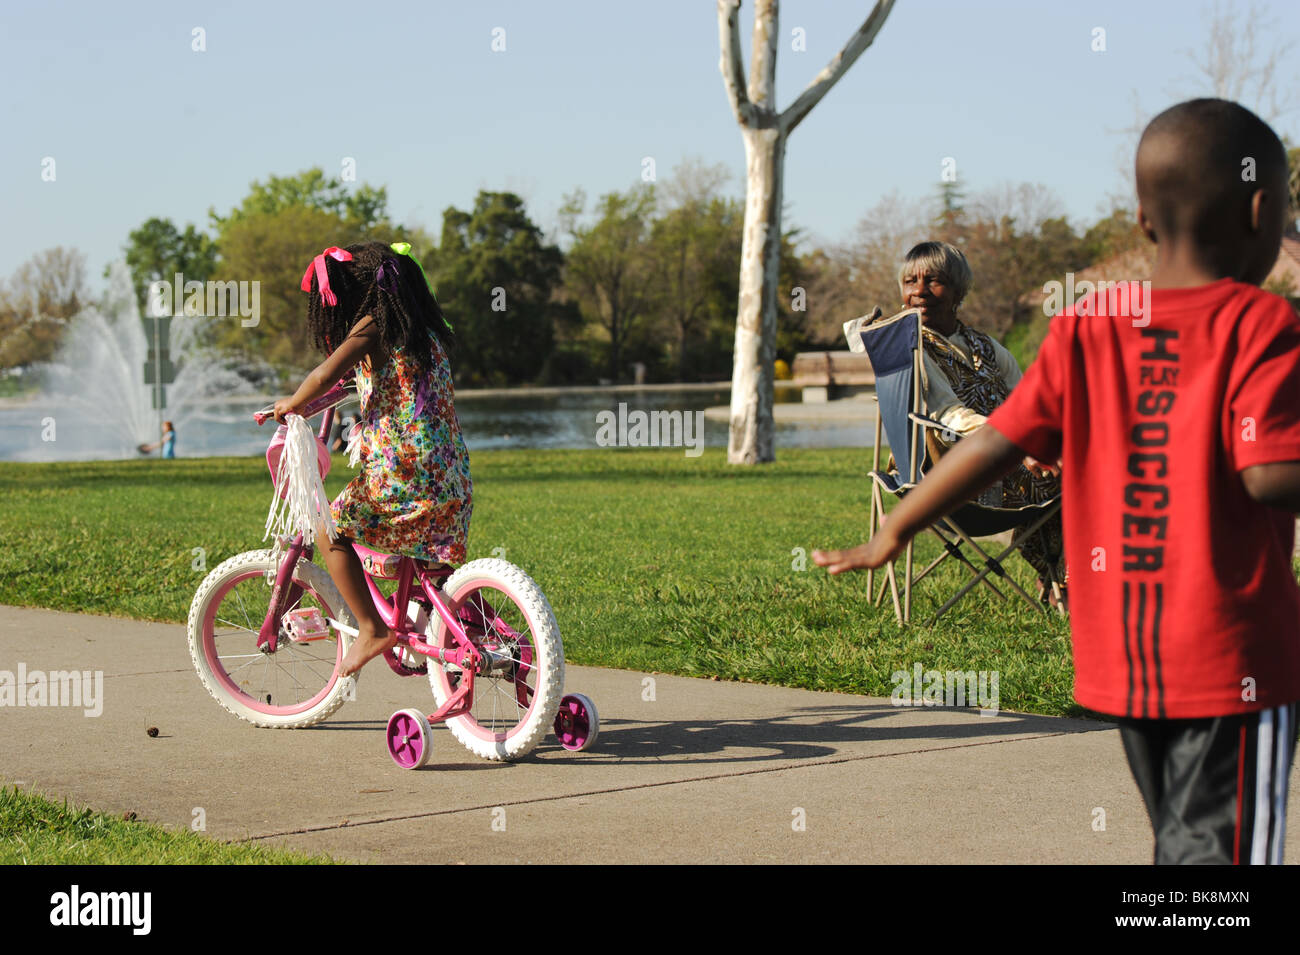 an aunt looks around after her little niece riding on a tricycle - Stock Image